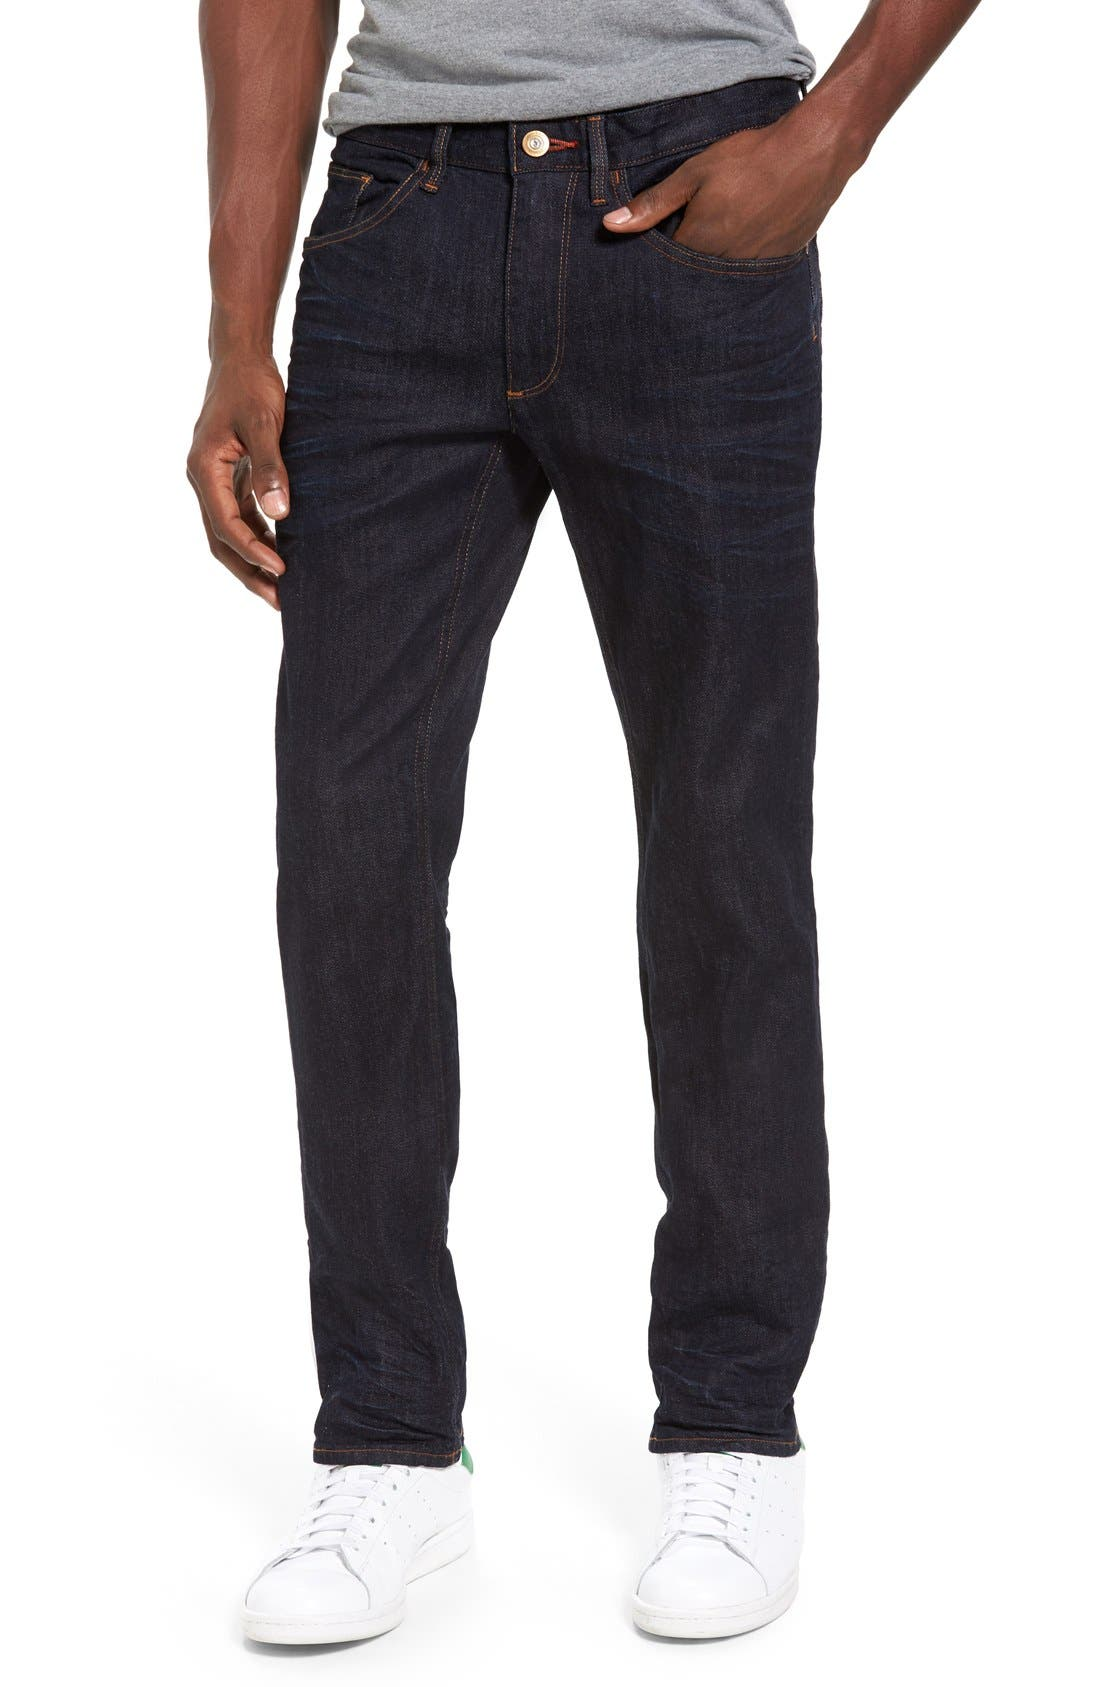 Canal Slim Fit Jeans,                         Main,                         color, Indigo